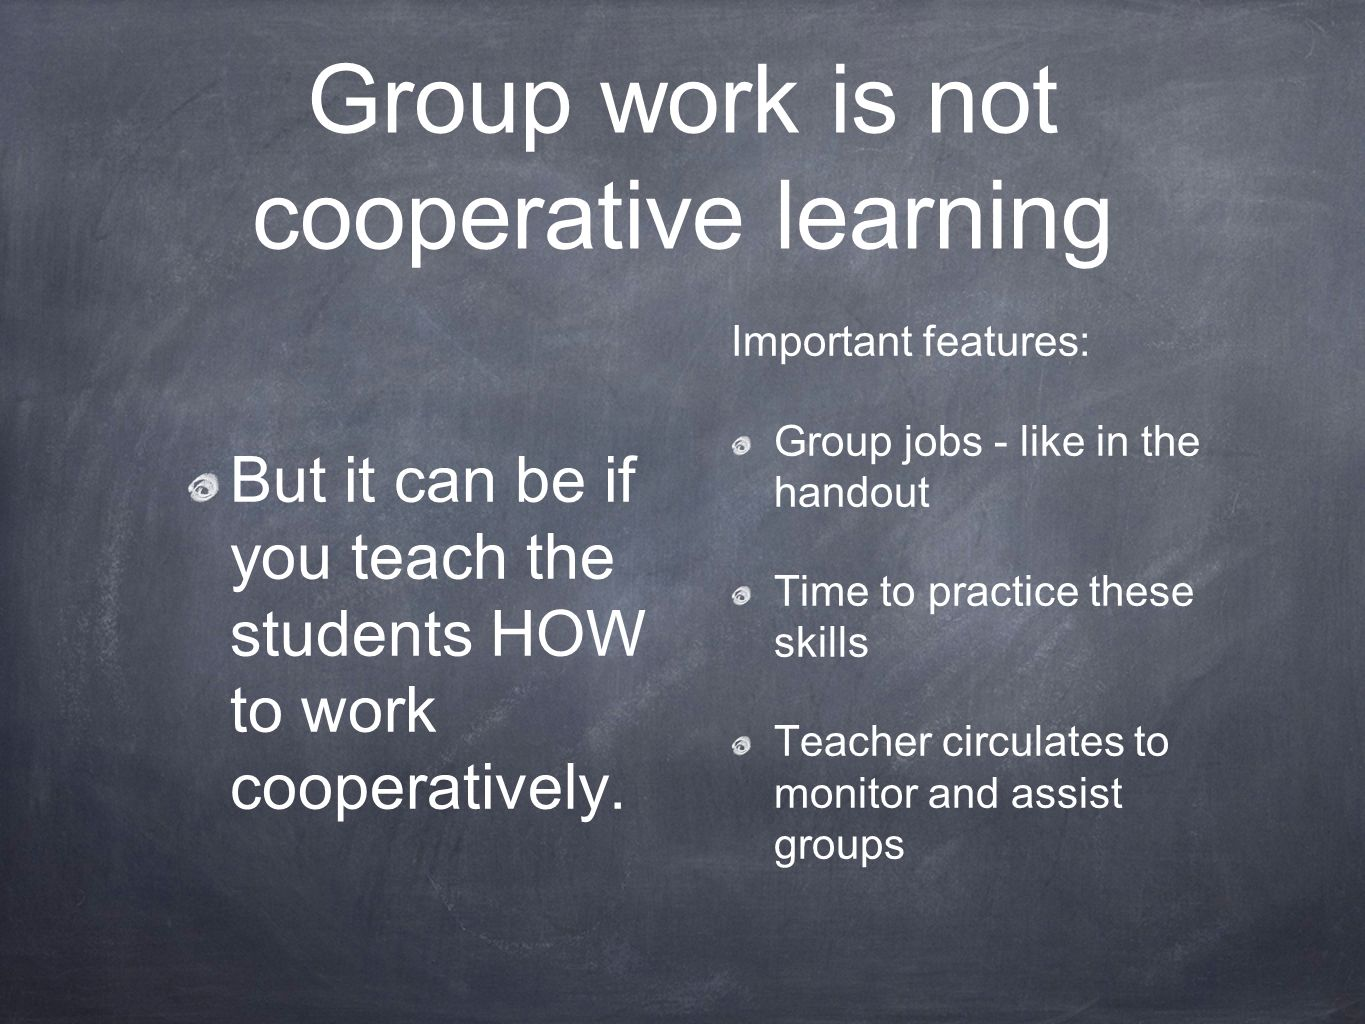 Group work is not cooperative learning But it can be if you teach the students HOW to work cooperatively.